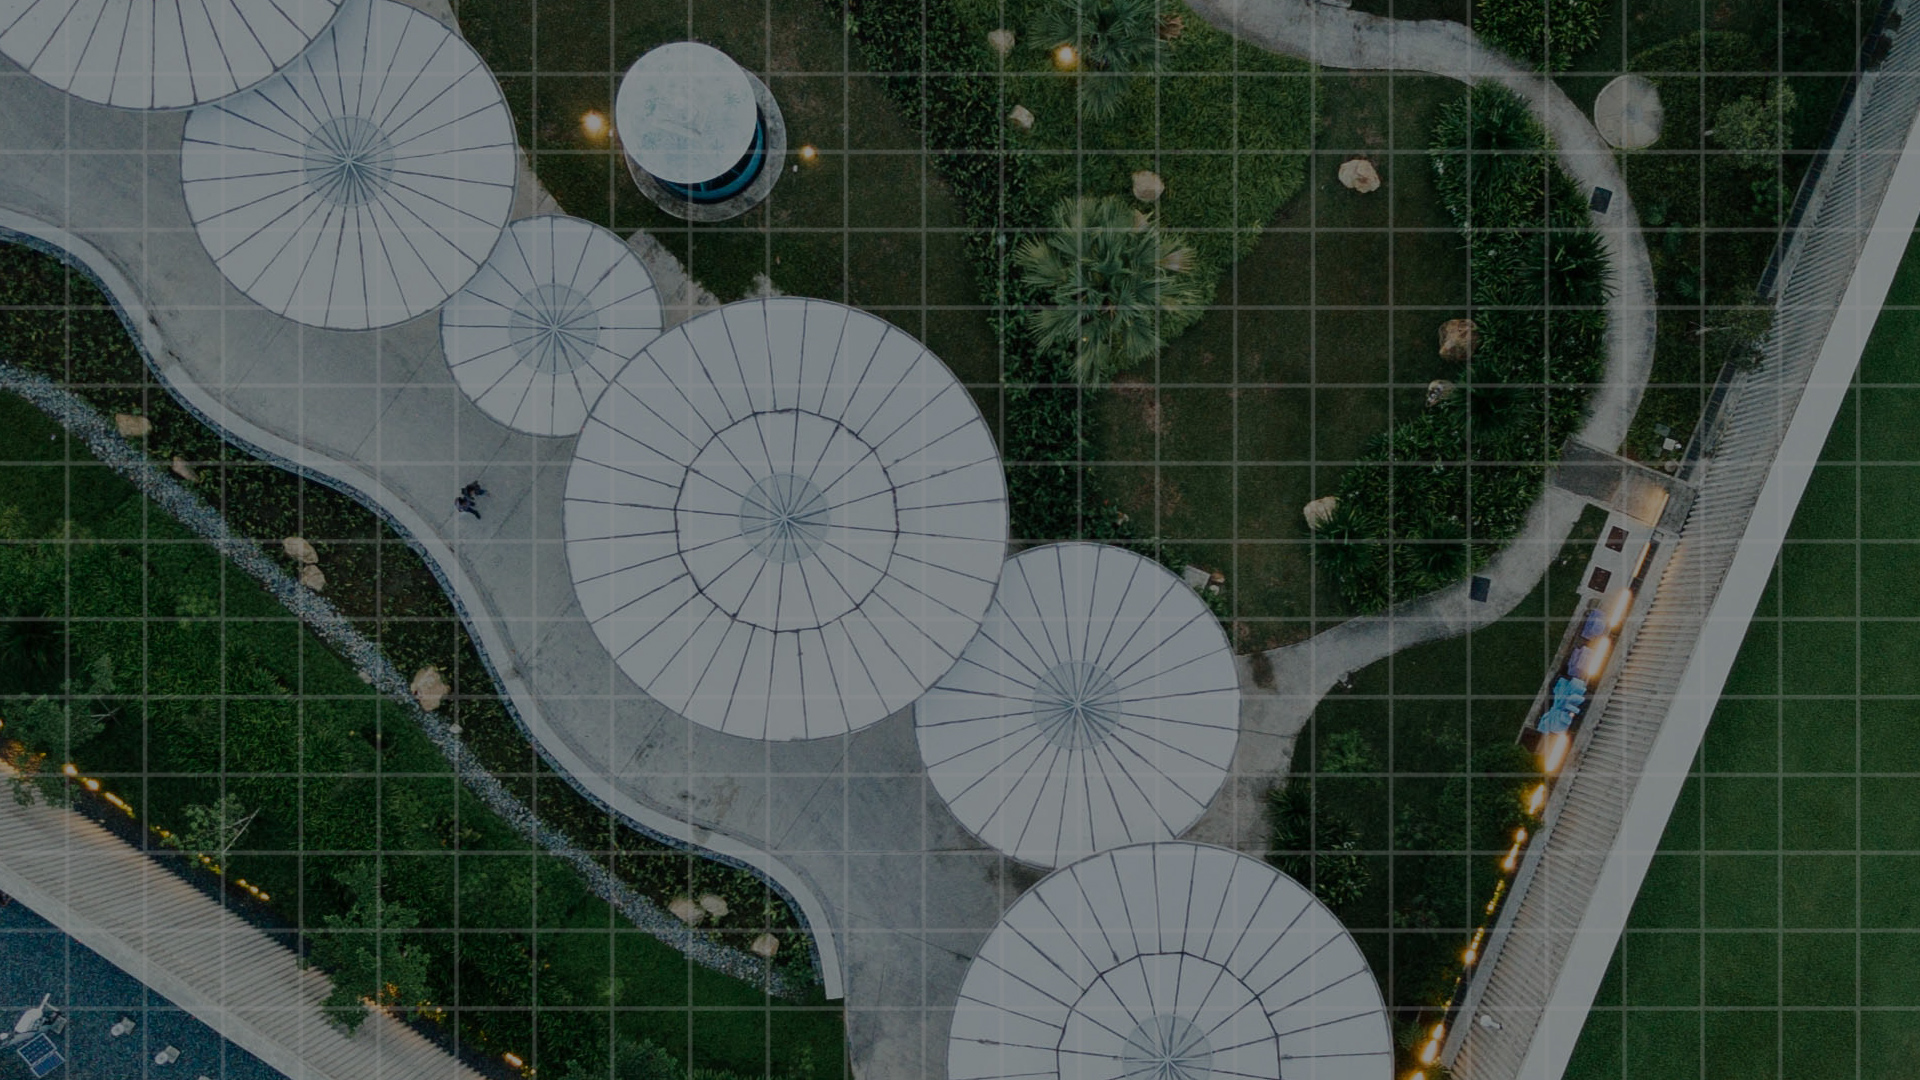 birds eye view of circular buildings